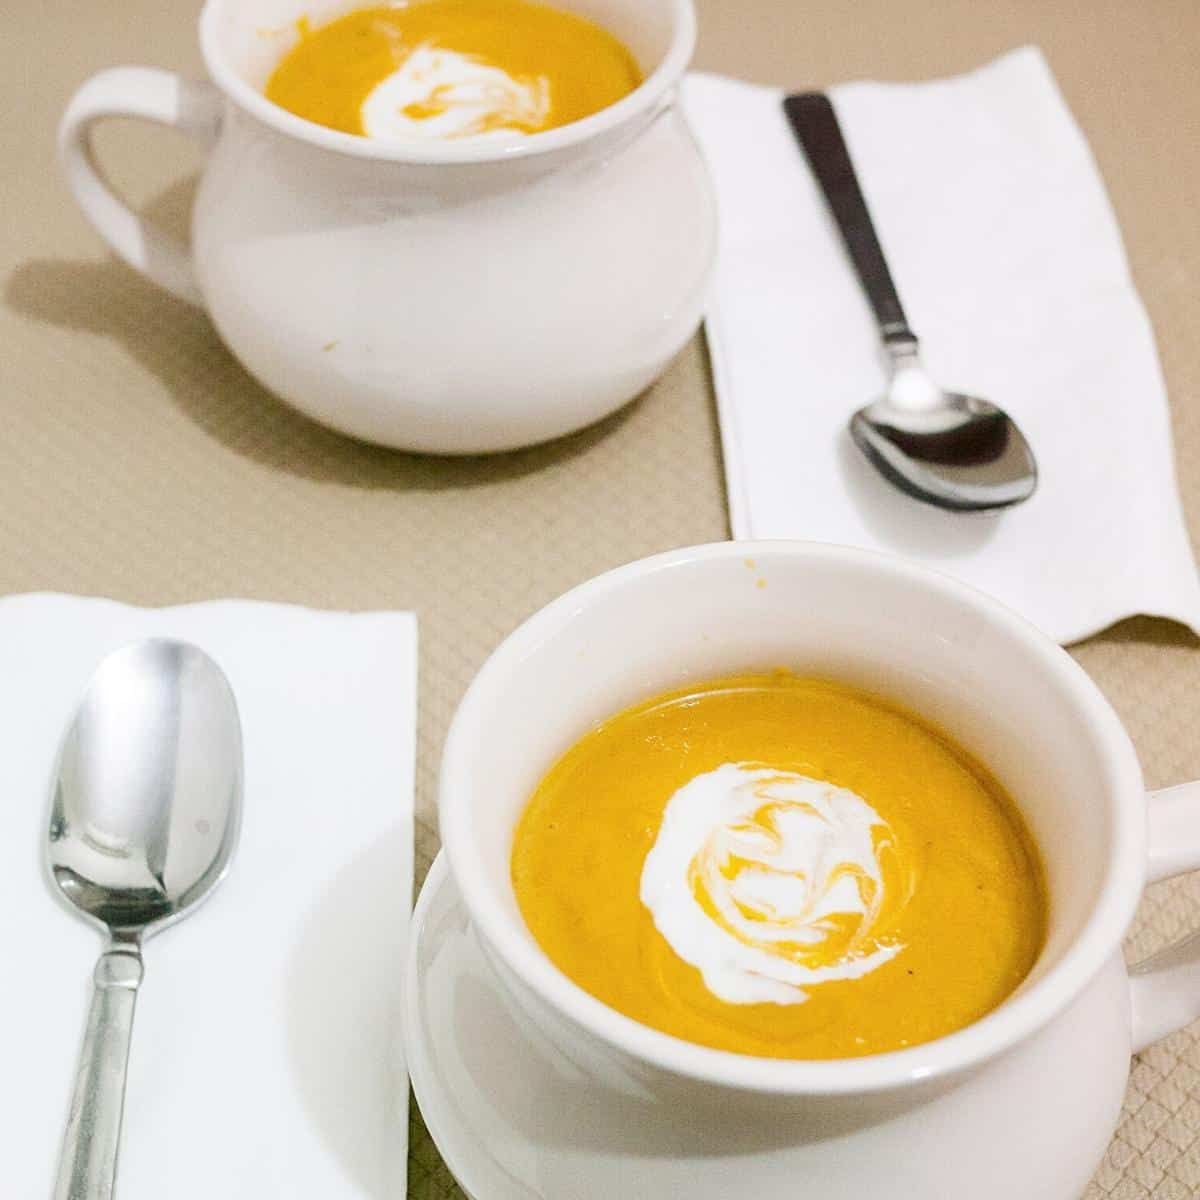 Two bowls with pumpkin soup.